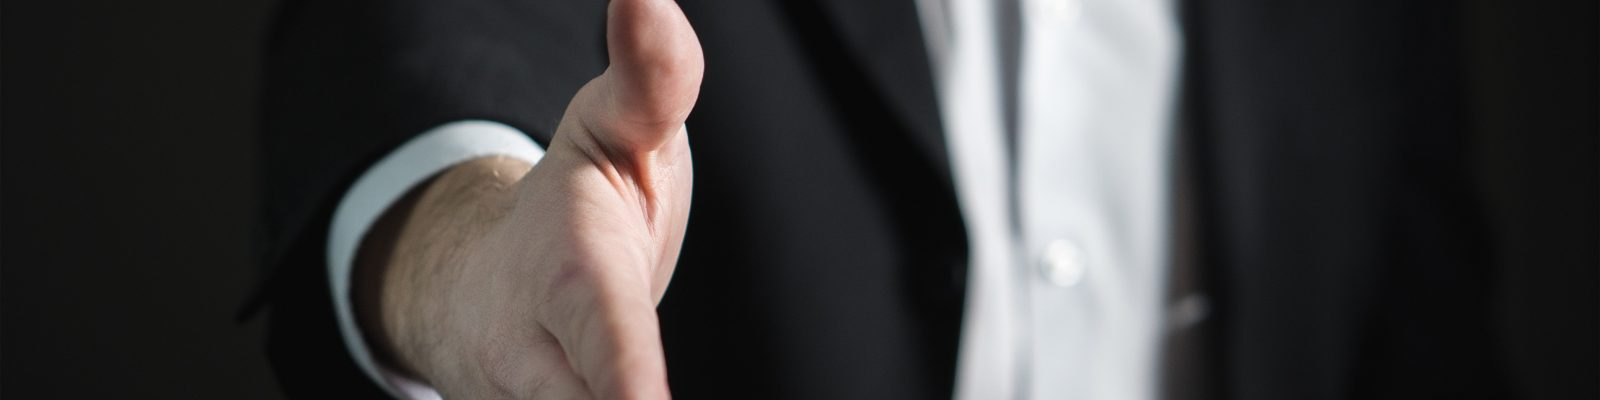 Man in busines suit reaches out to shake hand